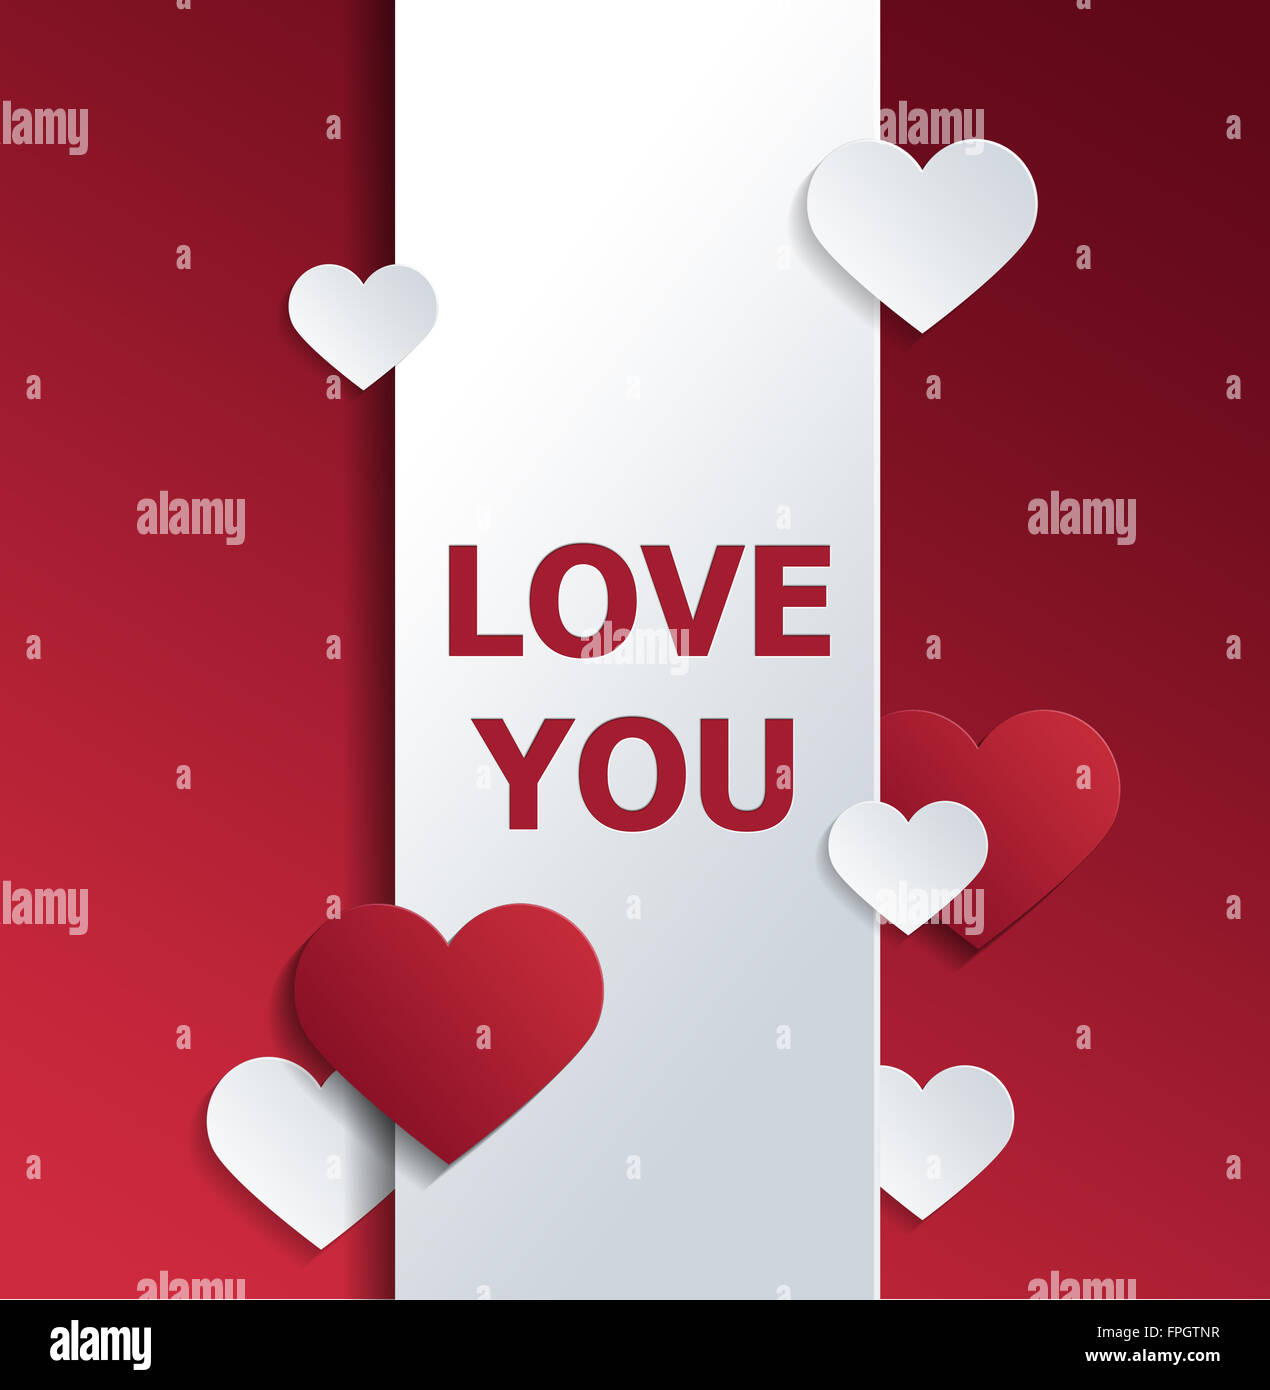 Valentine Greeting Card Graphic Message Of Love Printed In Red On